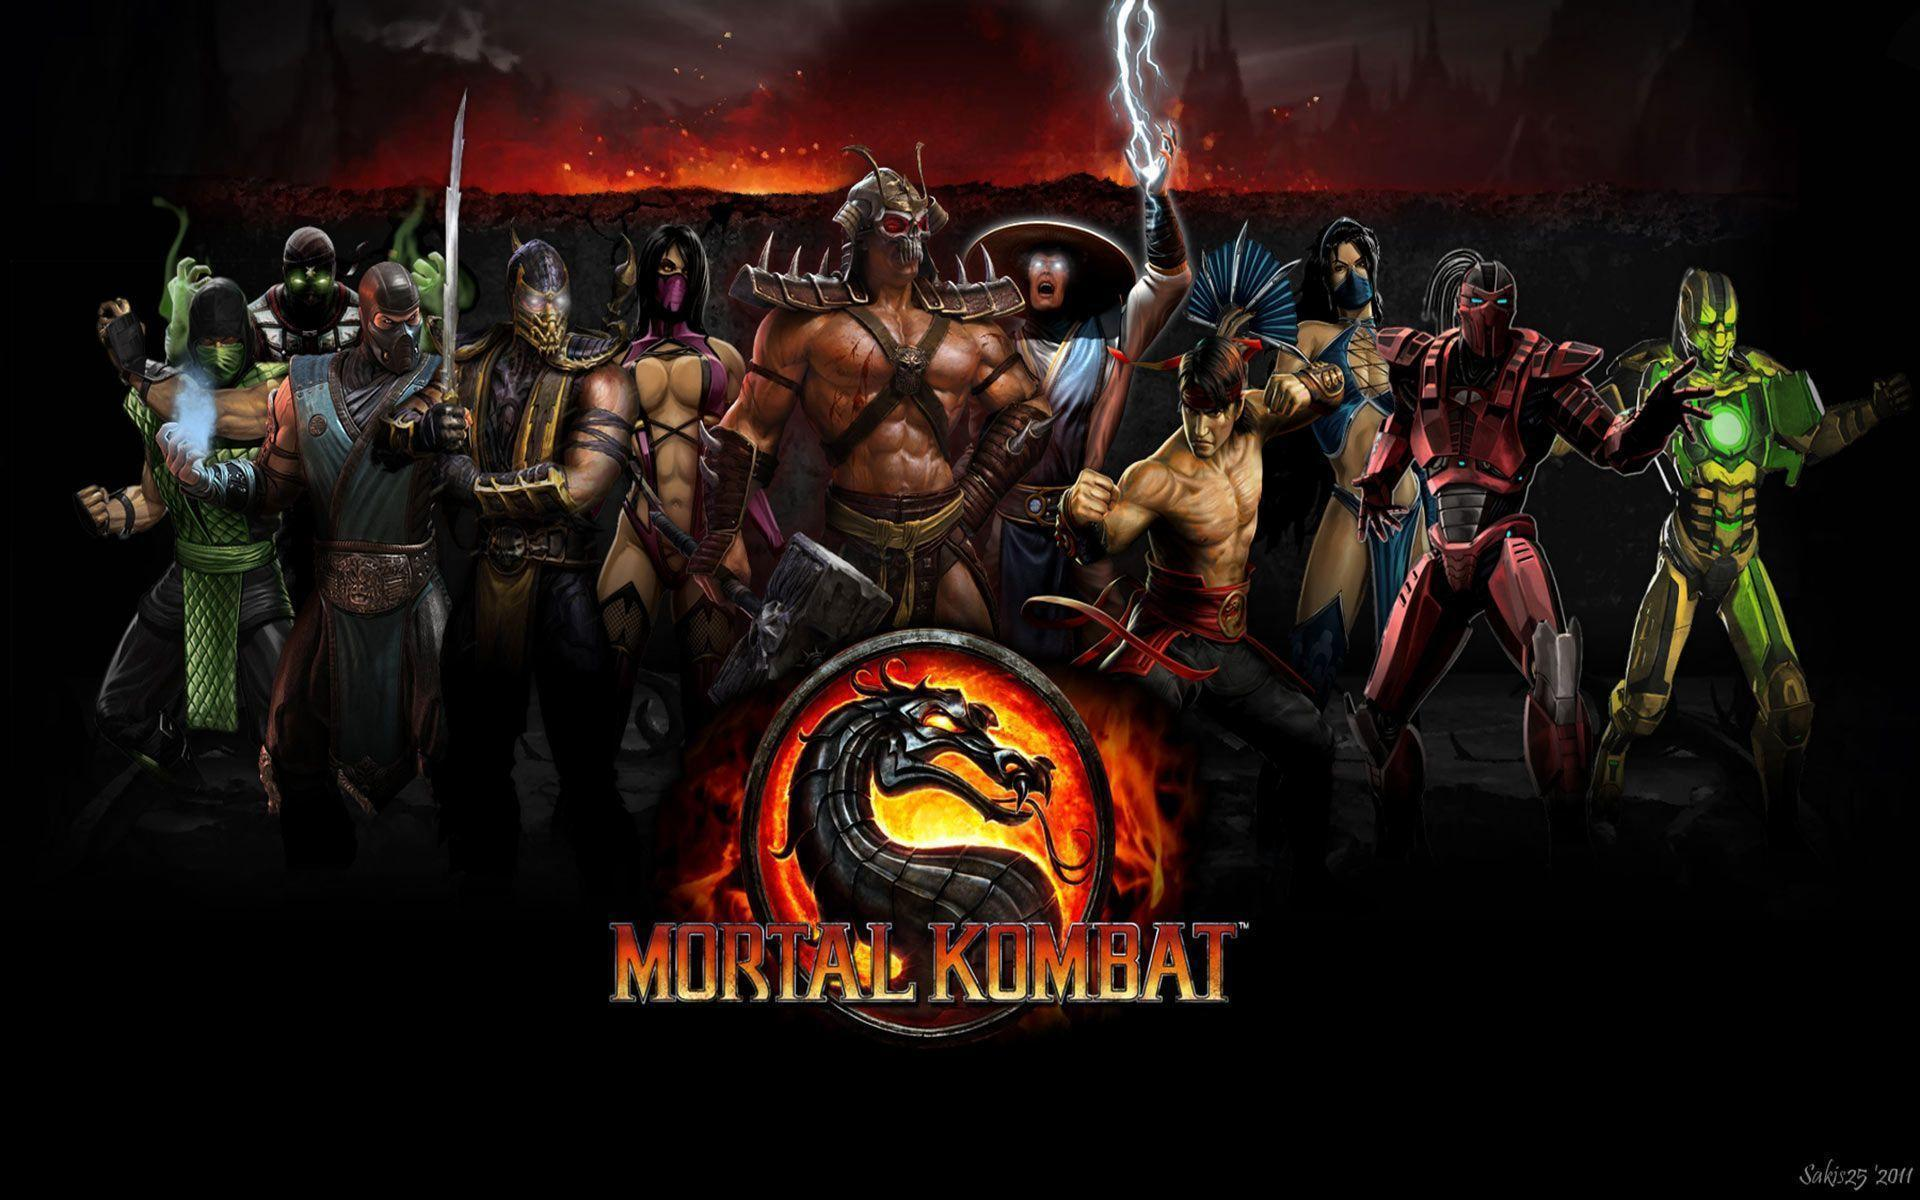 Mortal Kombat 4 Wallpapers Top Free Mortal Kombat 4 Backgrounds